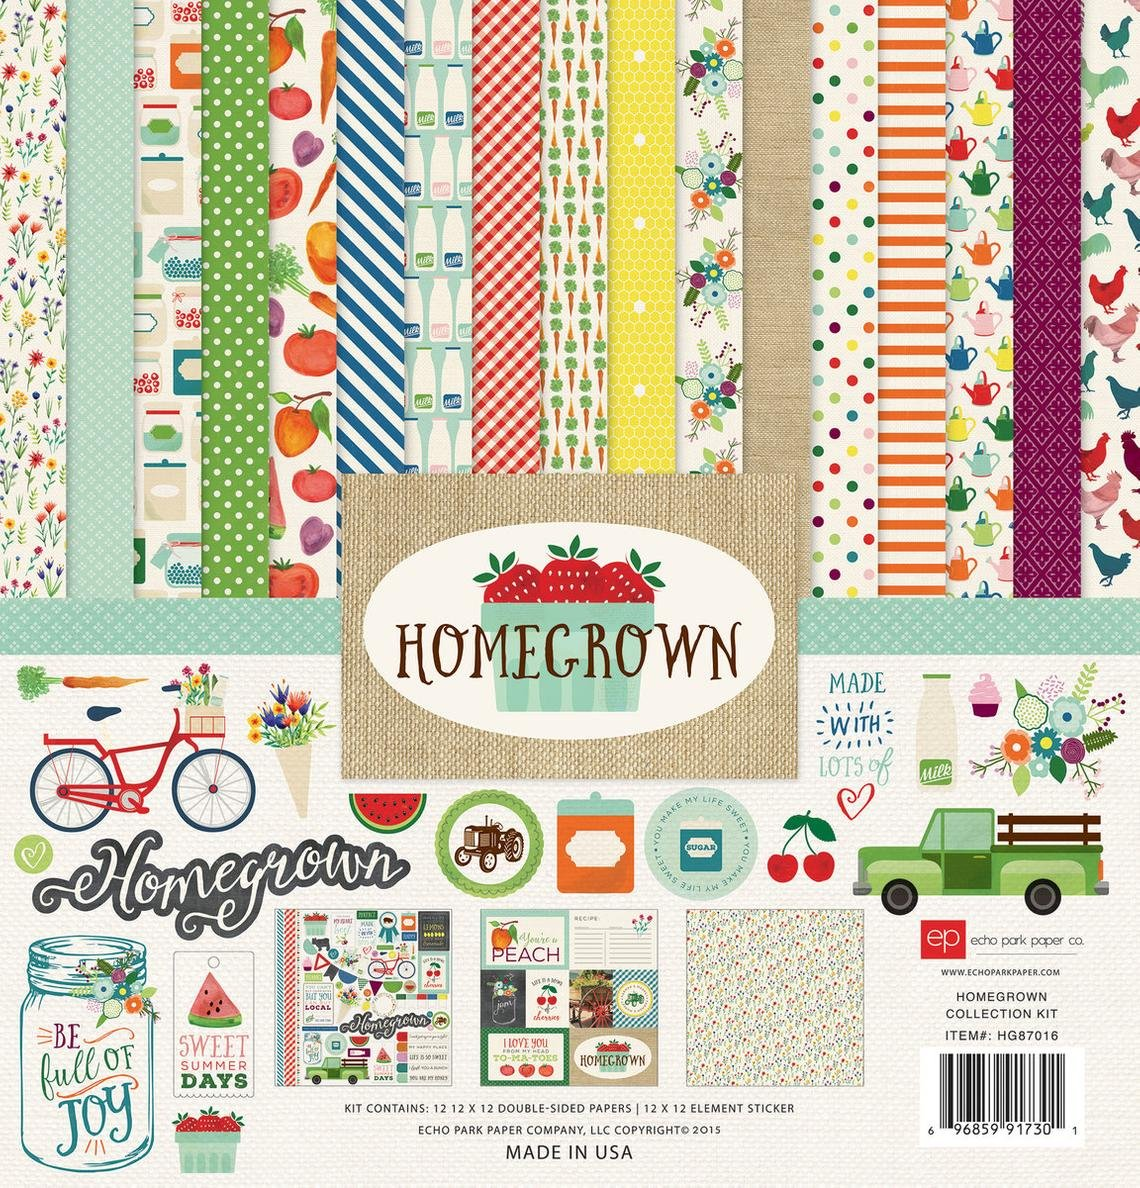 Echo Park Collection Kit 12x12 - Homegrown